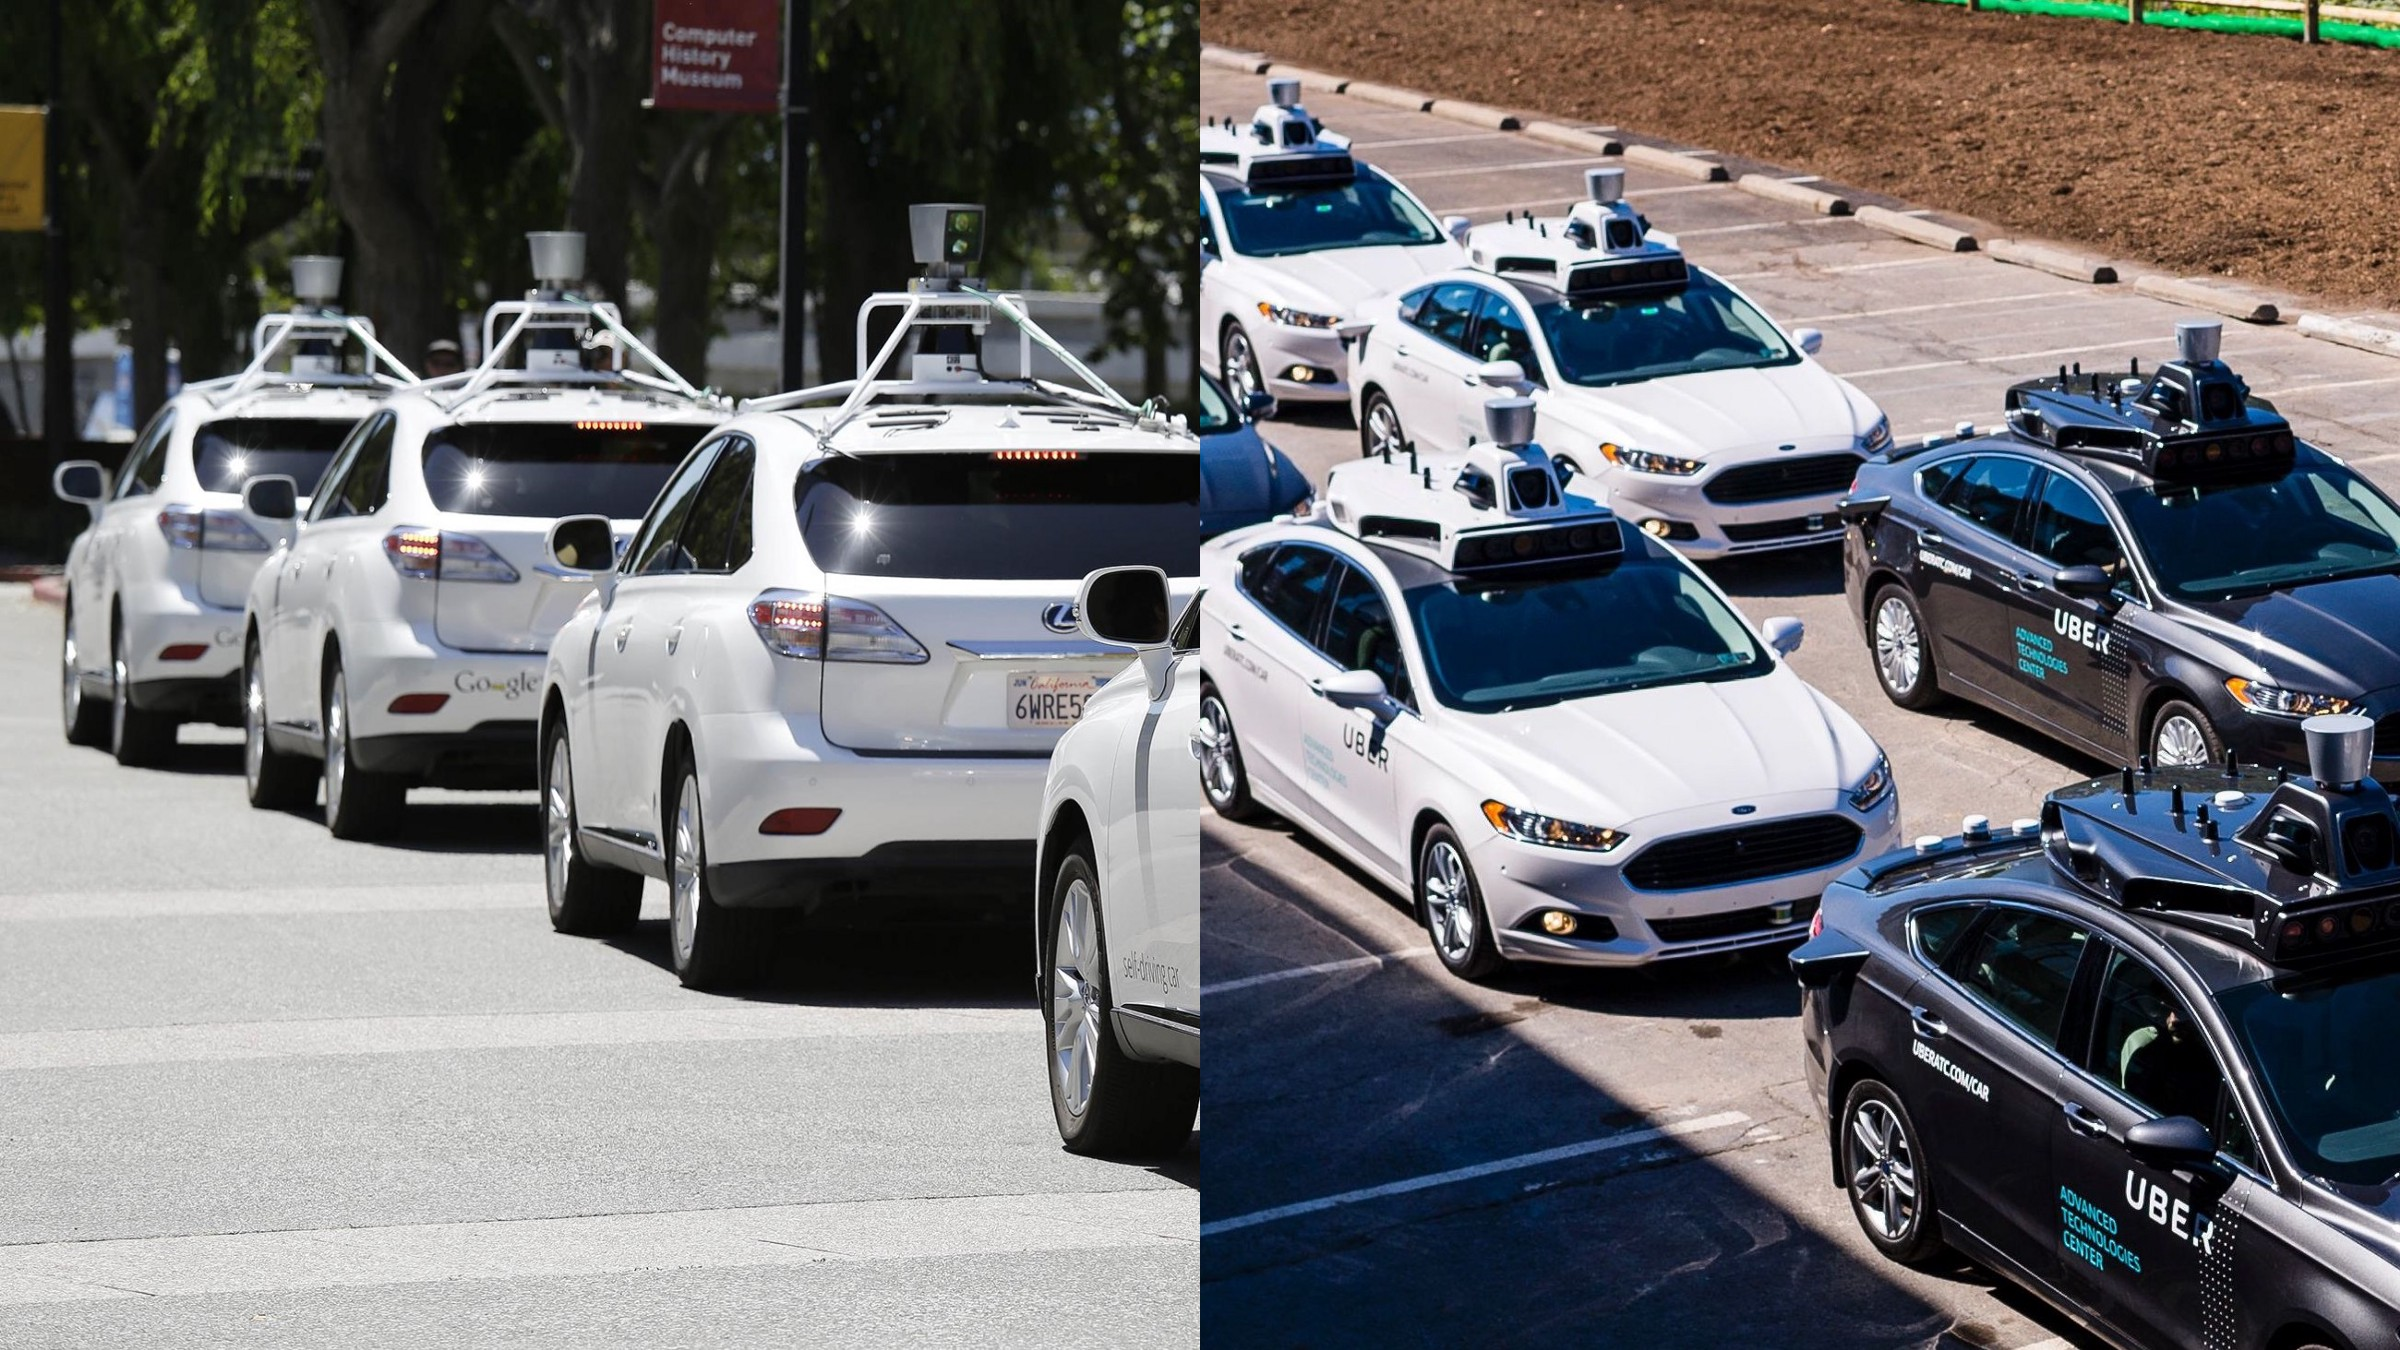 /competition-in-the-autonomous-vehicle-industry-is-heating-up-22524d71ca5 feature image